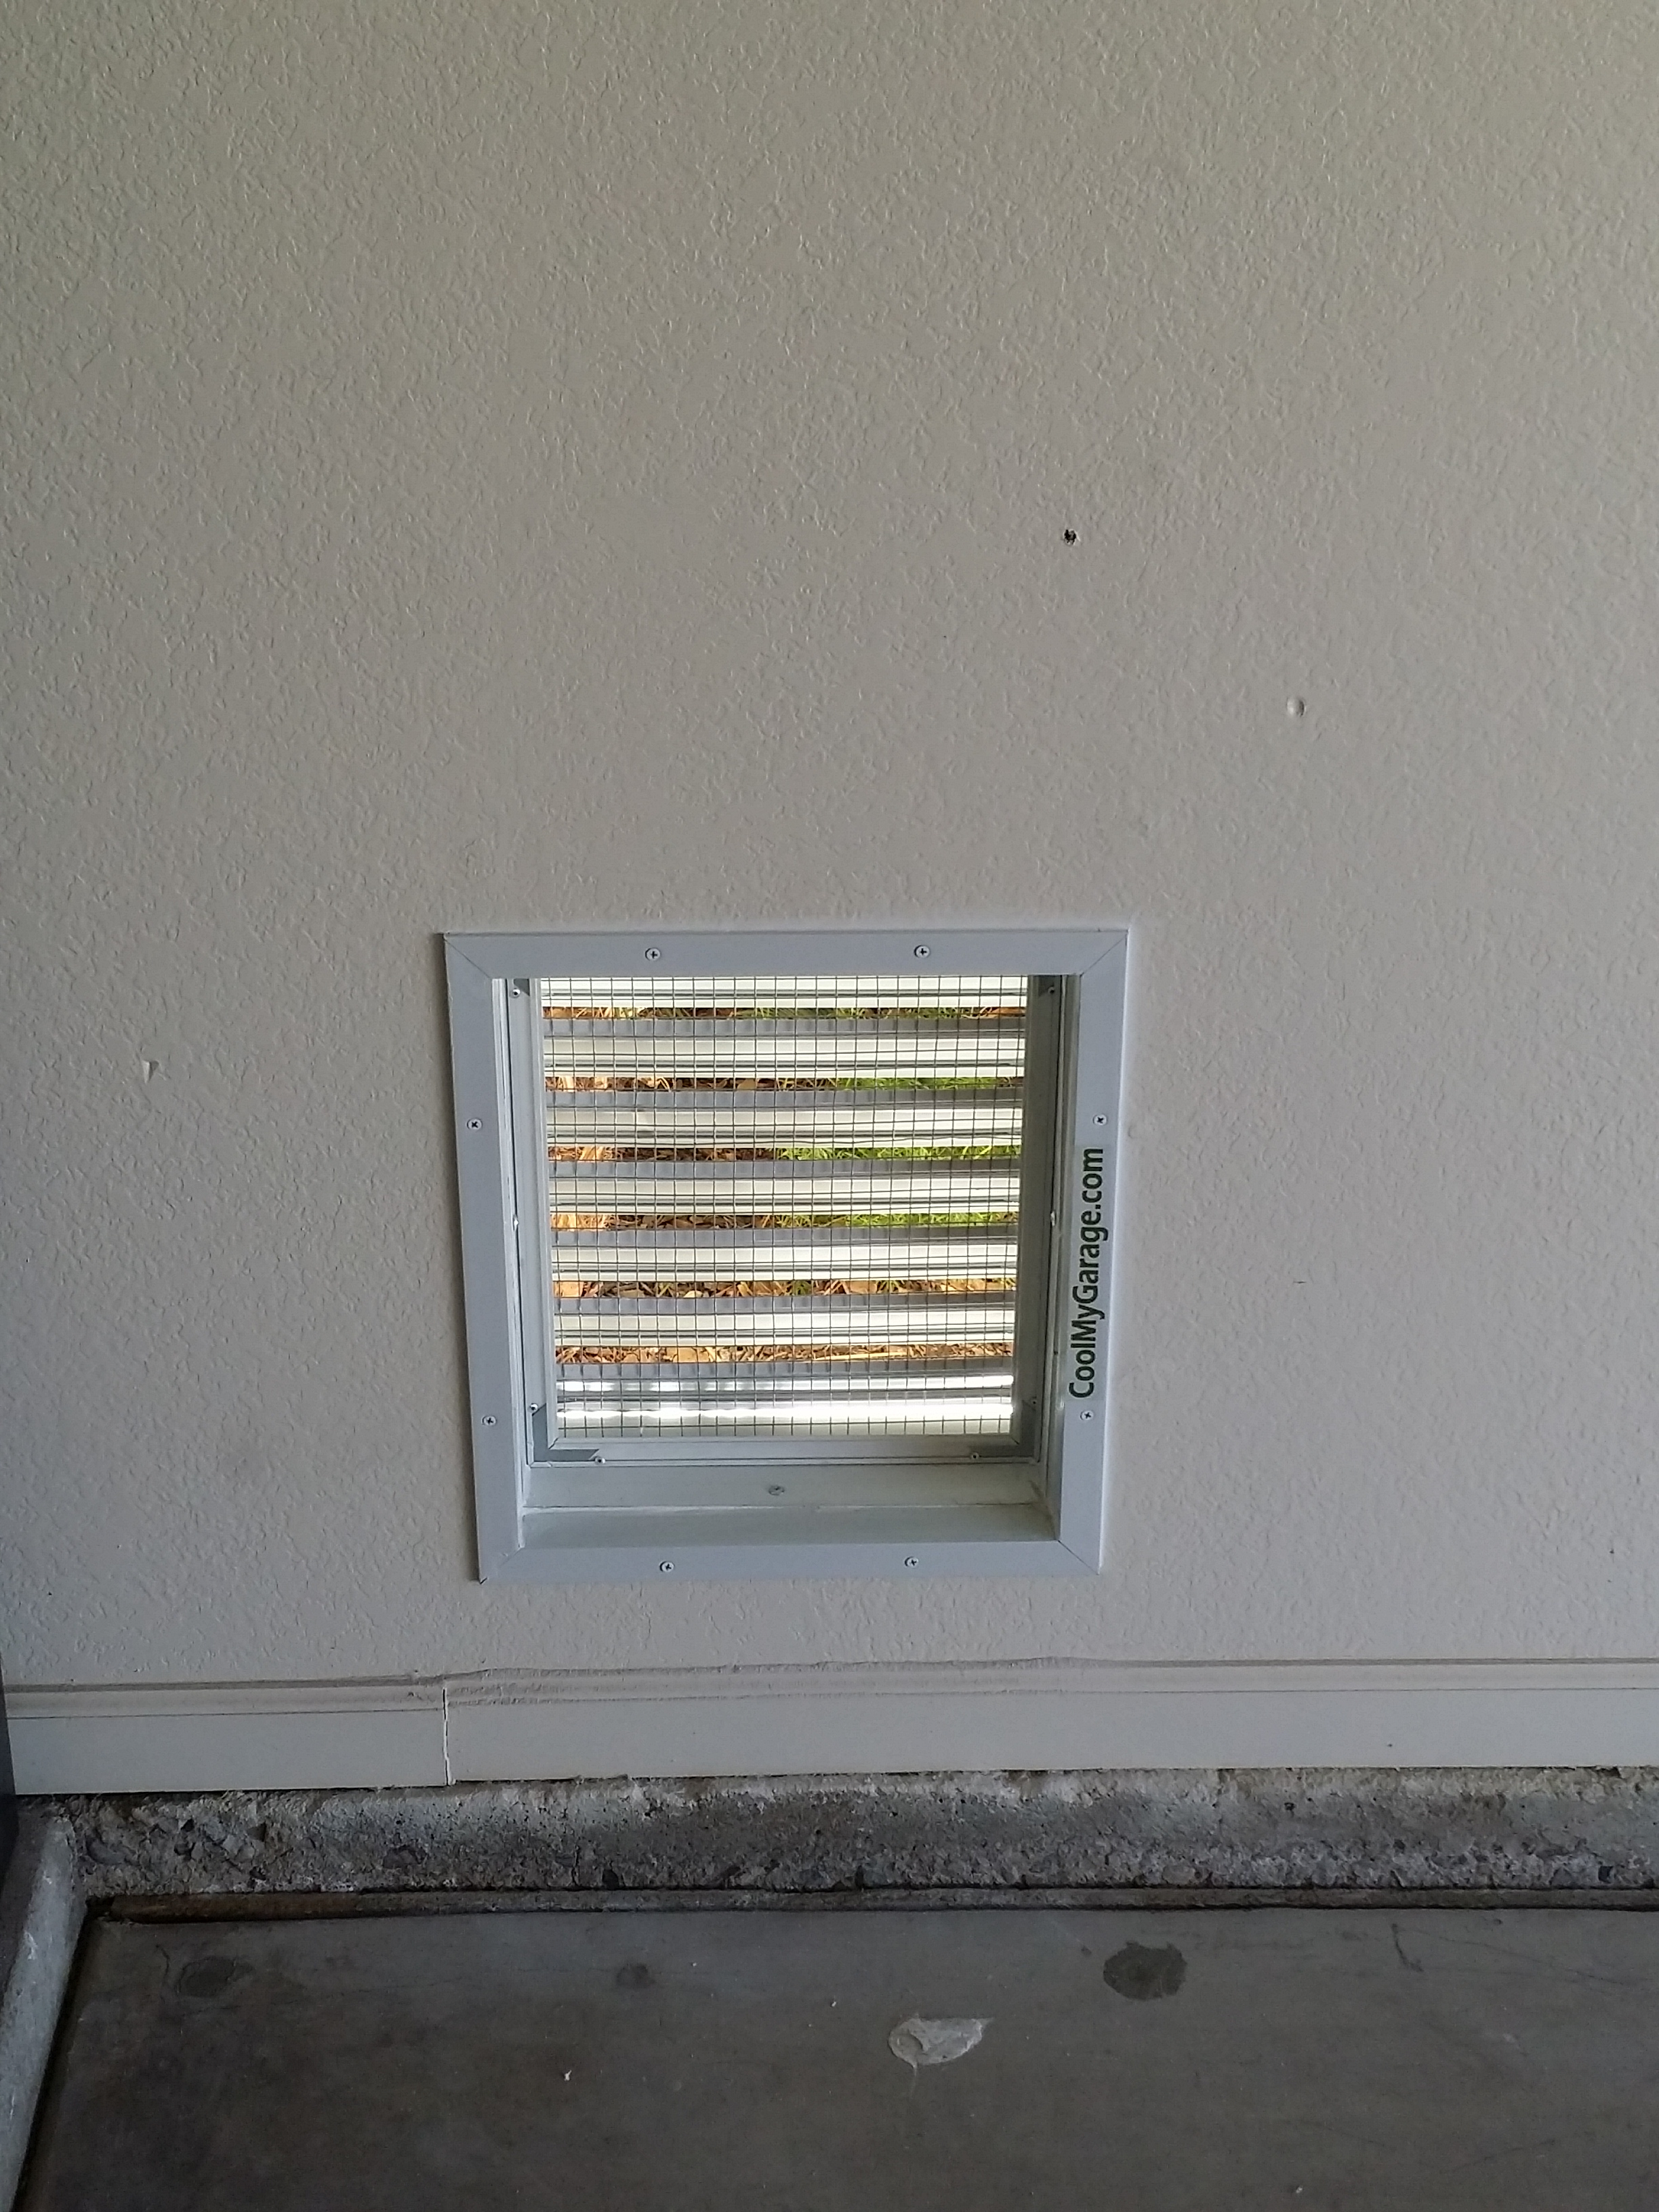 Aluminum Air Intake Vent Cool My Garage